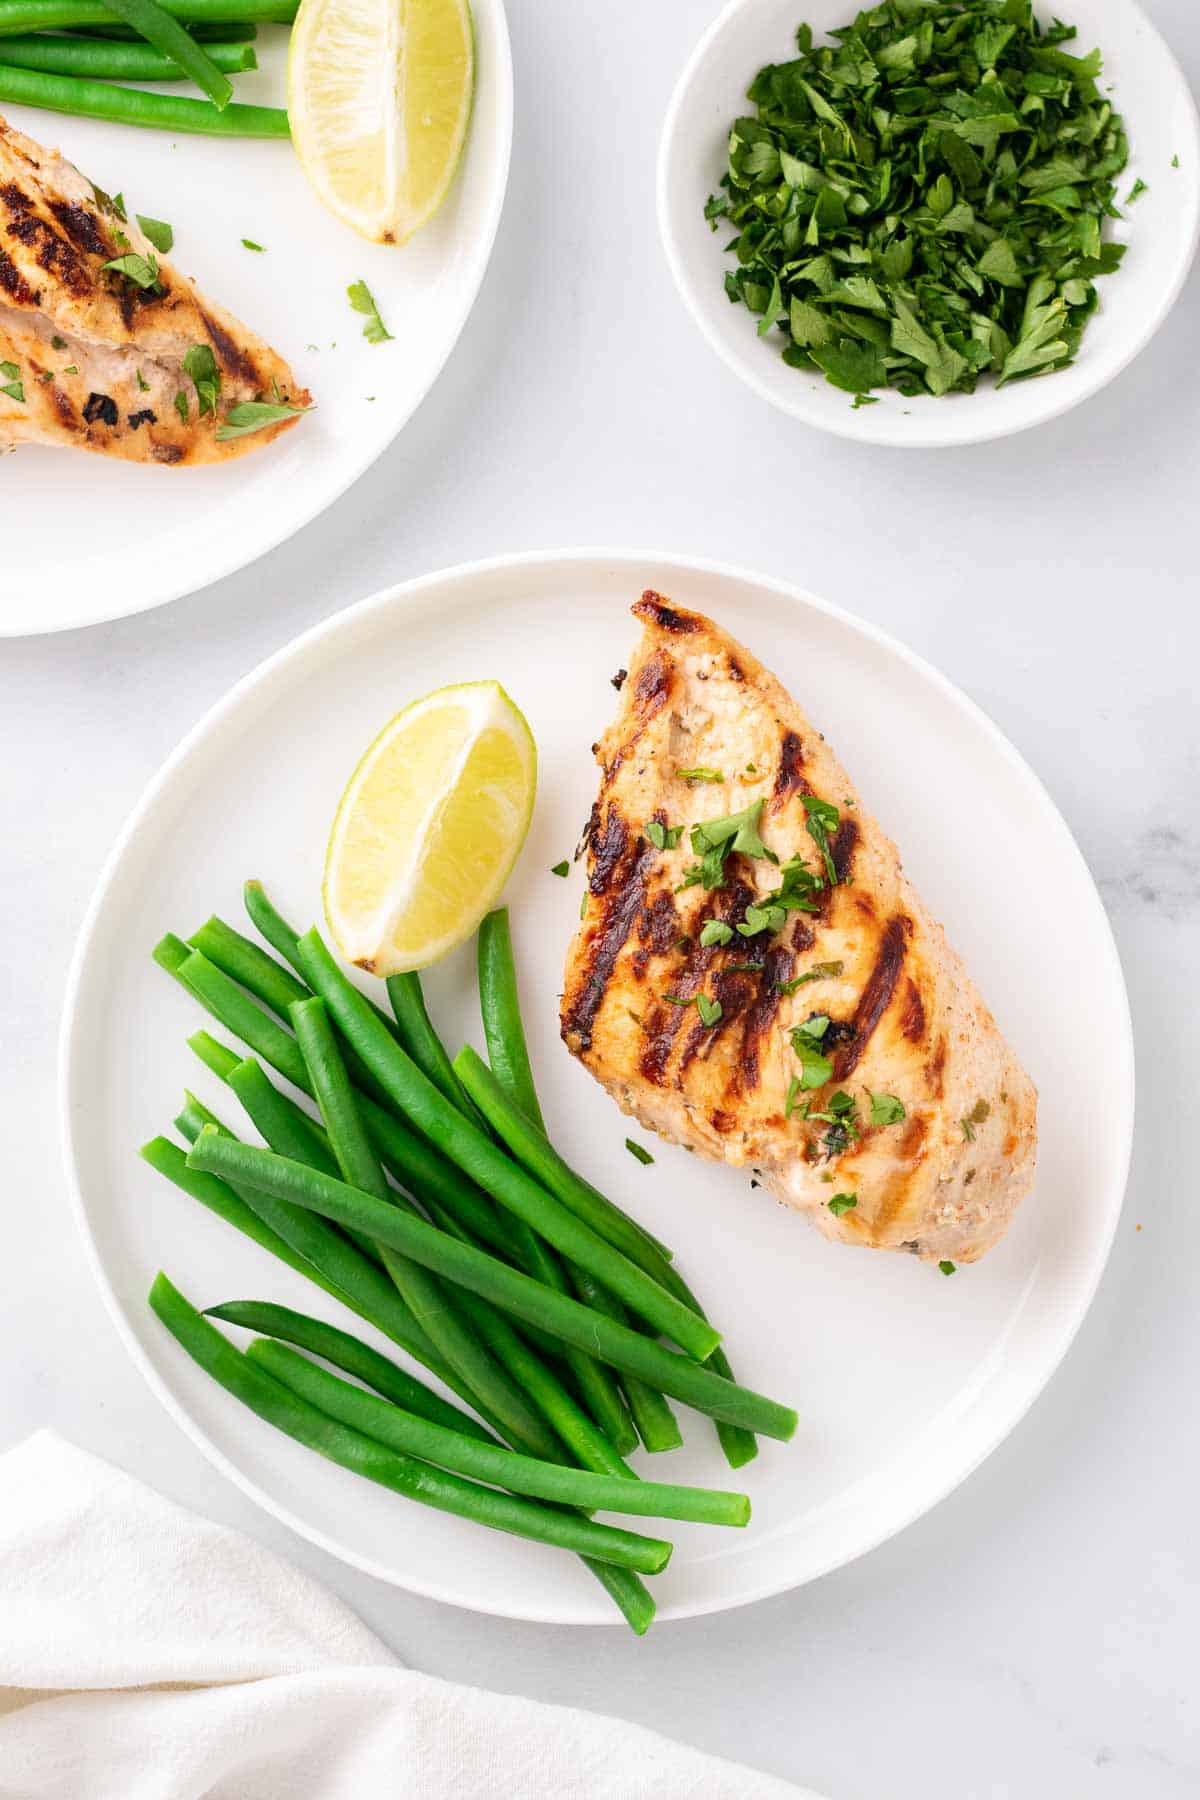 Overhead view of yogurt marinated chicken breast on a white plate with steamed green beans and a lemon wedge next to a ramekin of parsley